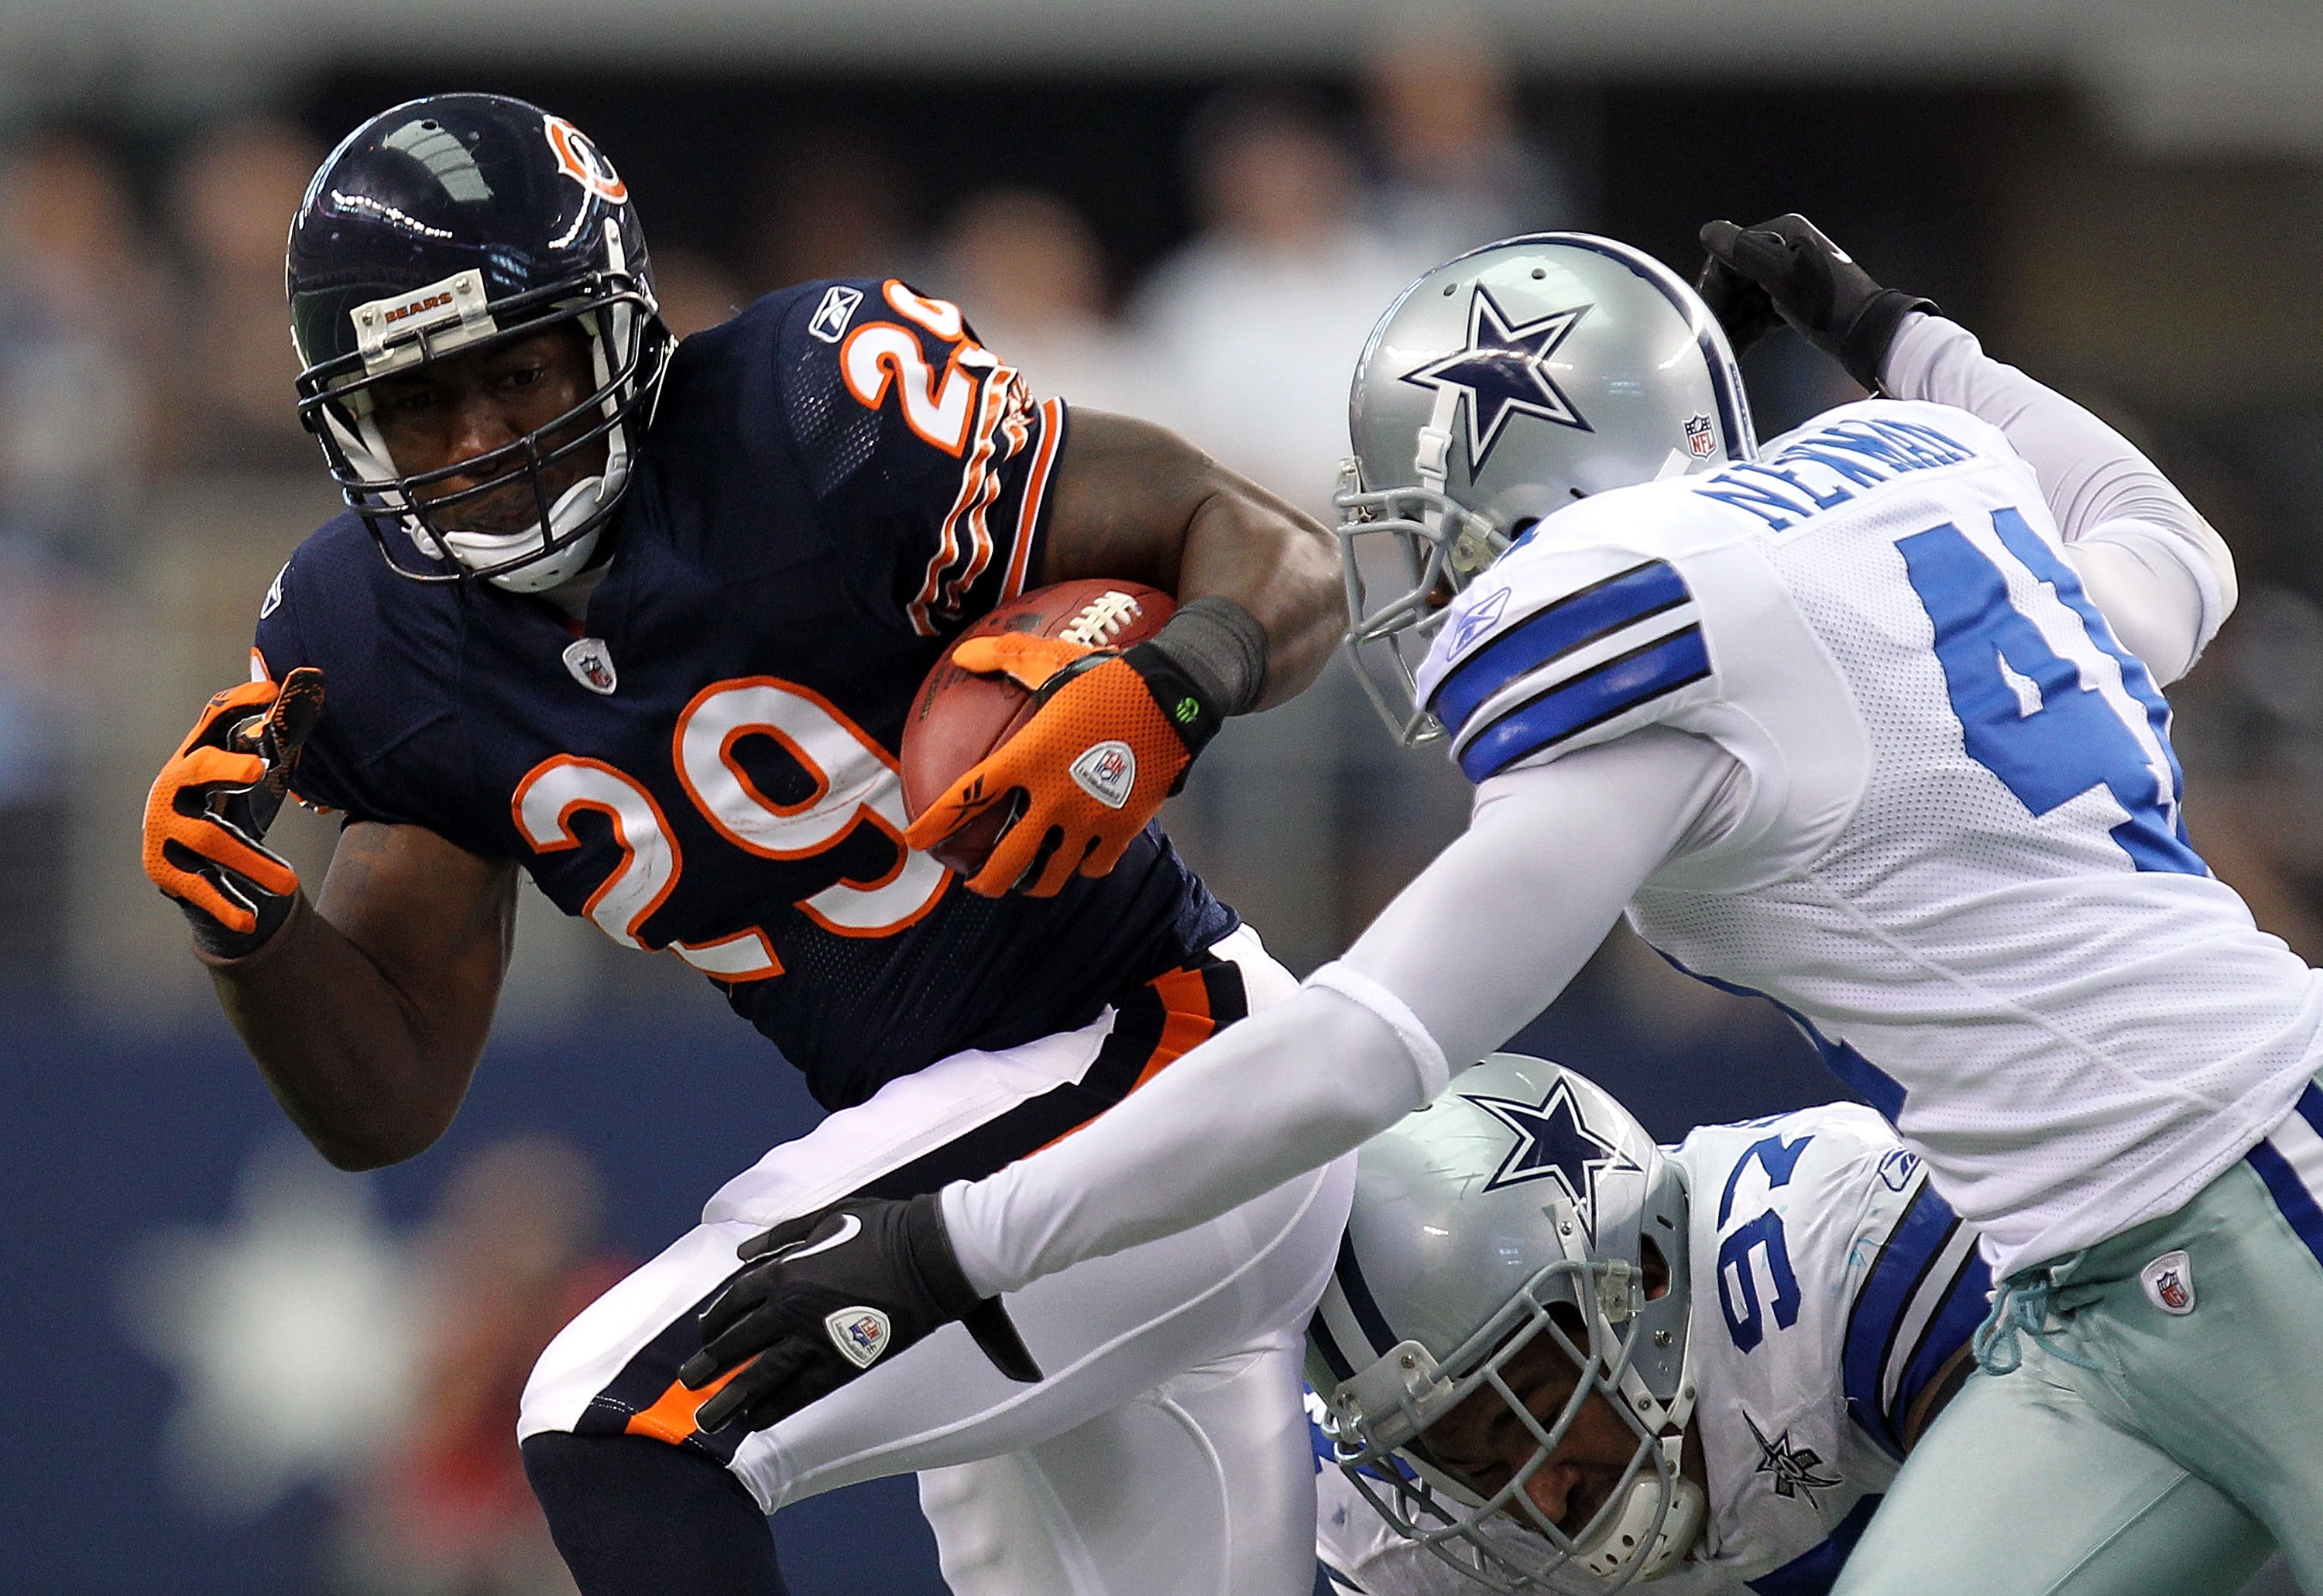 ARLINGTON, TX - SEPTEMBER 19:  Running back Chester Taylor #29 of the Chicago Bears runs the ball past Terence Newman #41 of the Dallas Cowboys at Cowboys Stadium on September 19, 2010 in Arlington, Texas.  (Photo by Ronald Martinez/Getty Images)